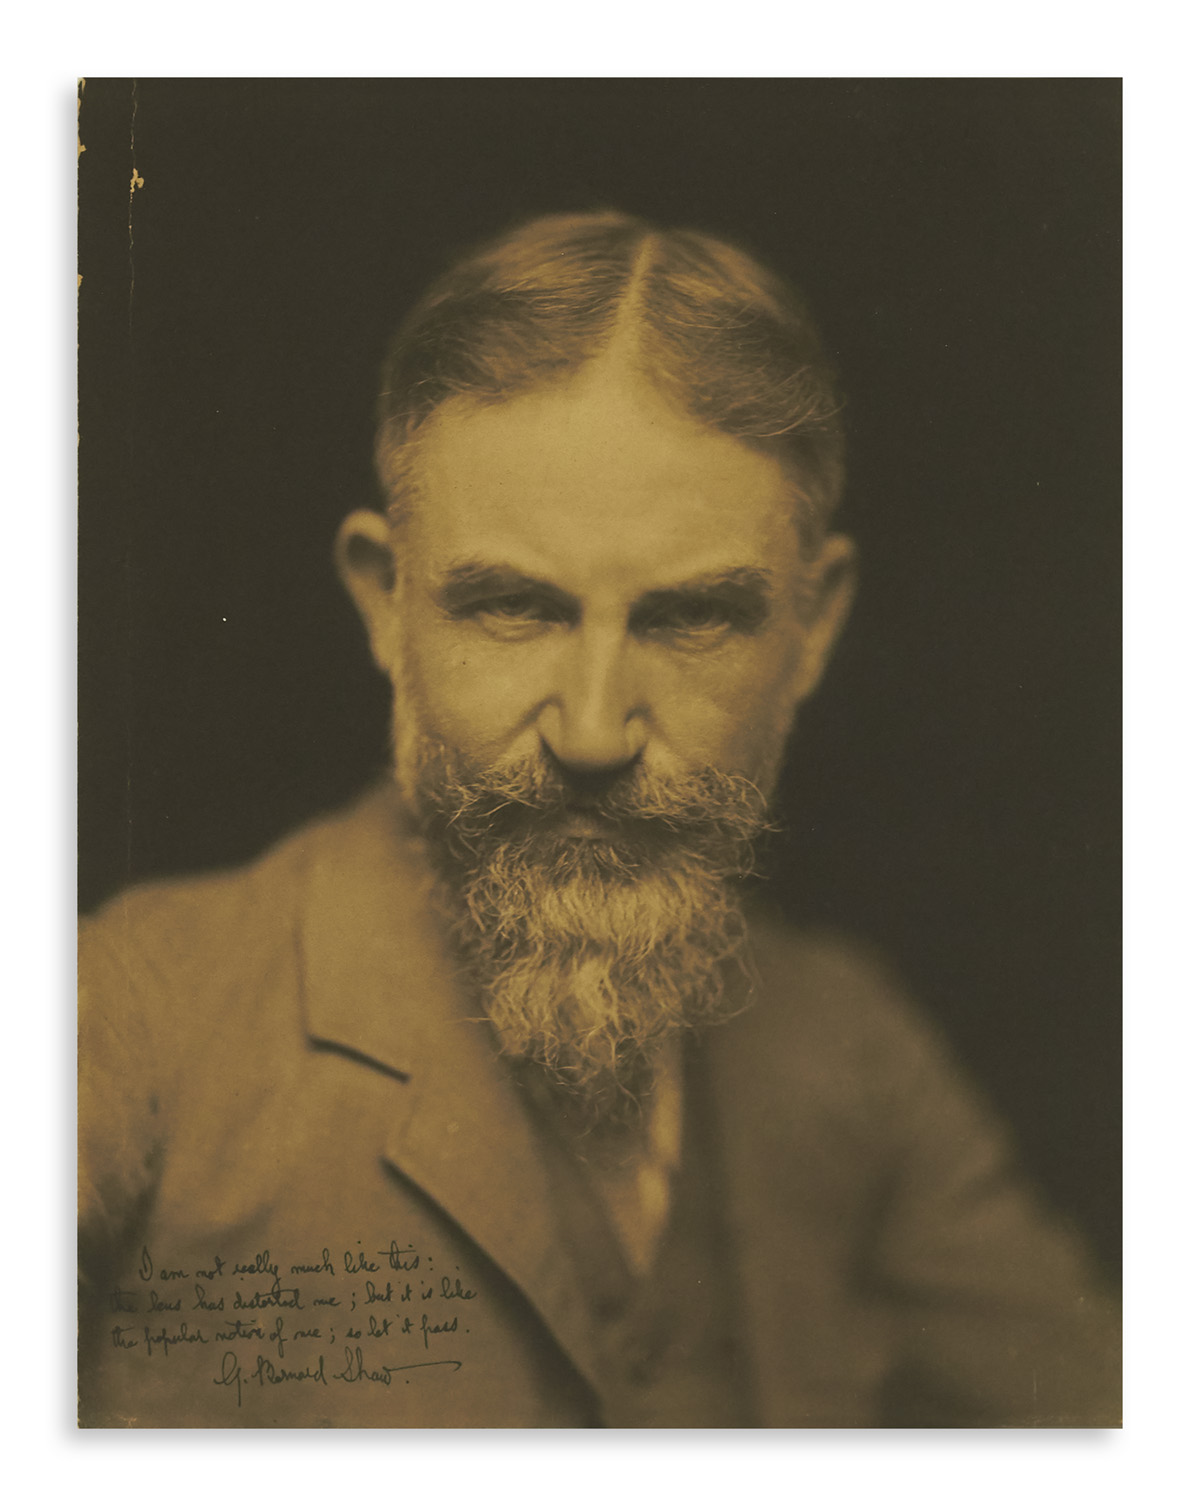 SHAW, GEORGE BERNARD. Photograph Signed and Inscribed, I am not really much like this: / the lens has distorted me; but it is like / t